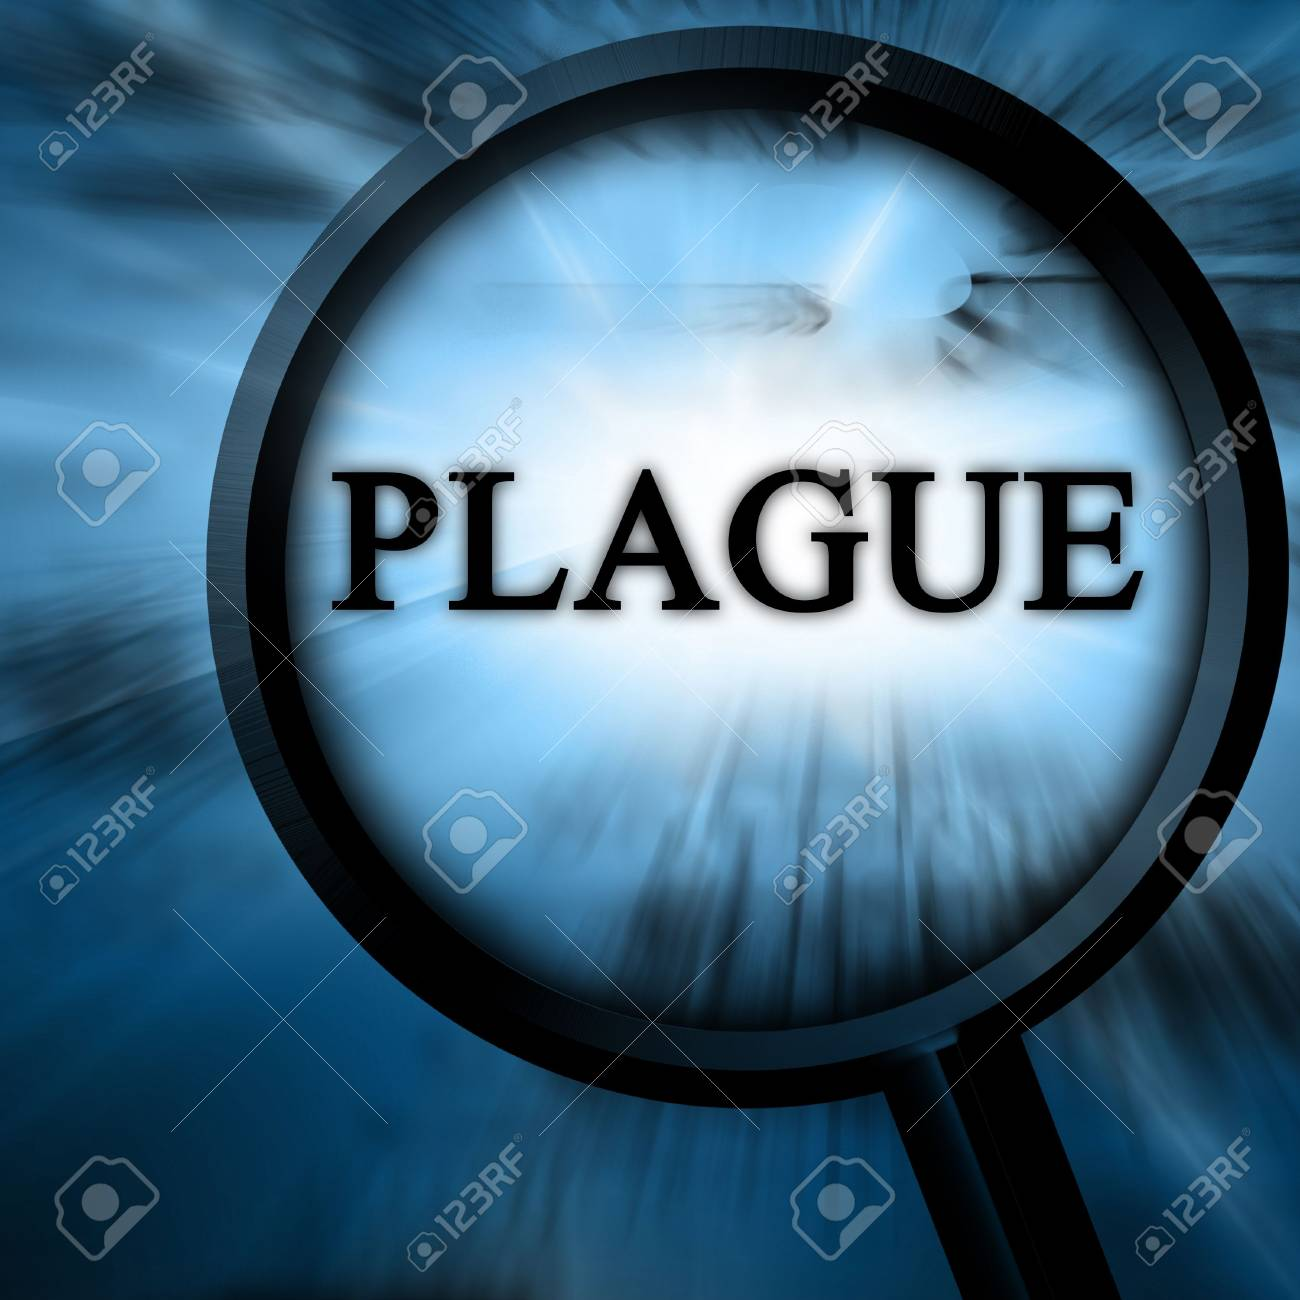 plague on a blue background with a magnifier Stock Photo - 5809030